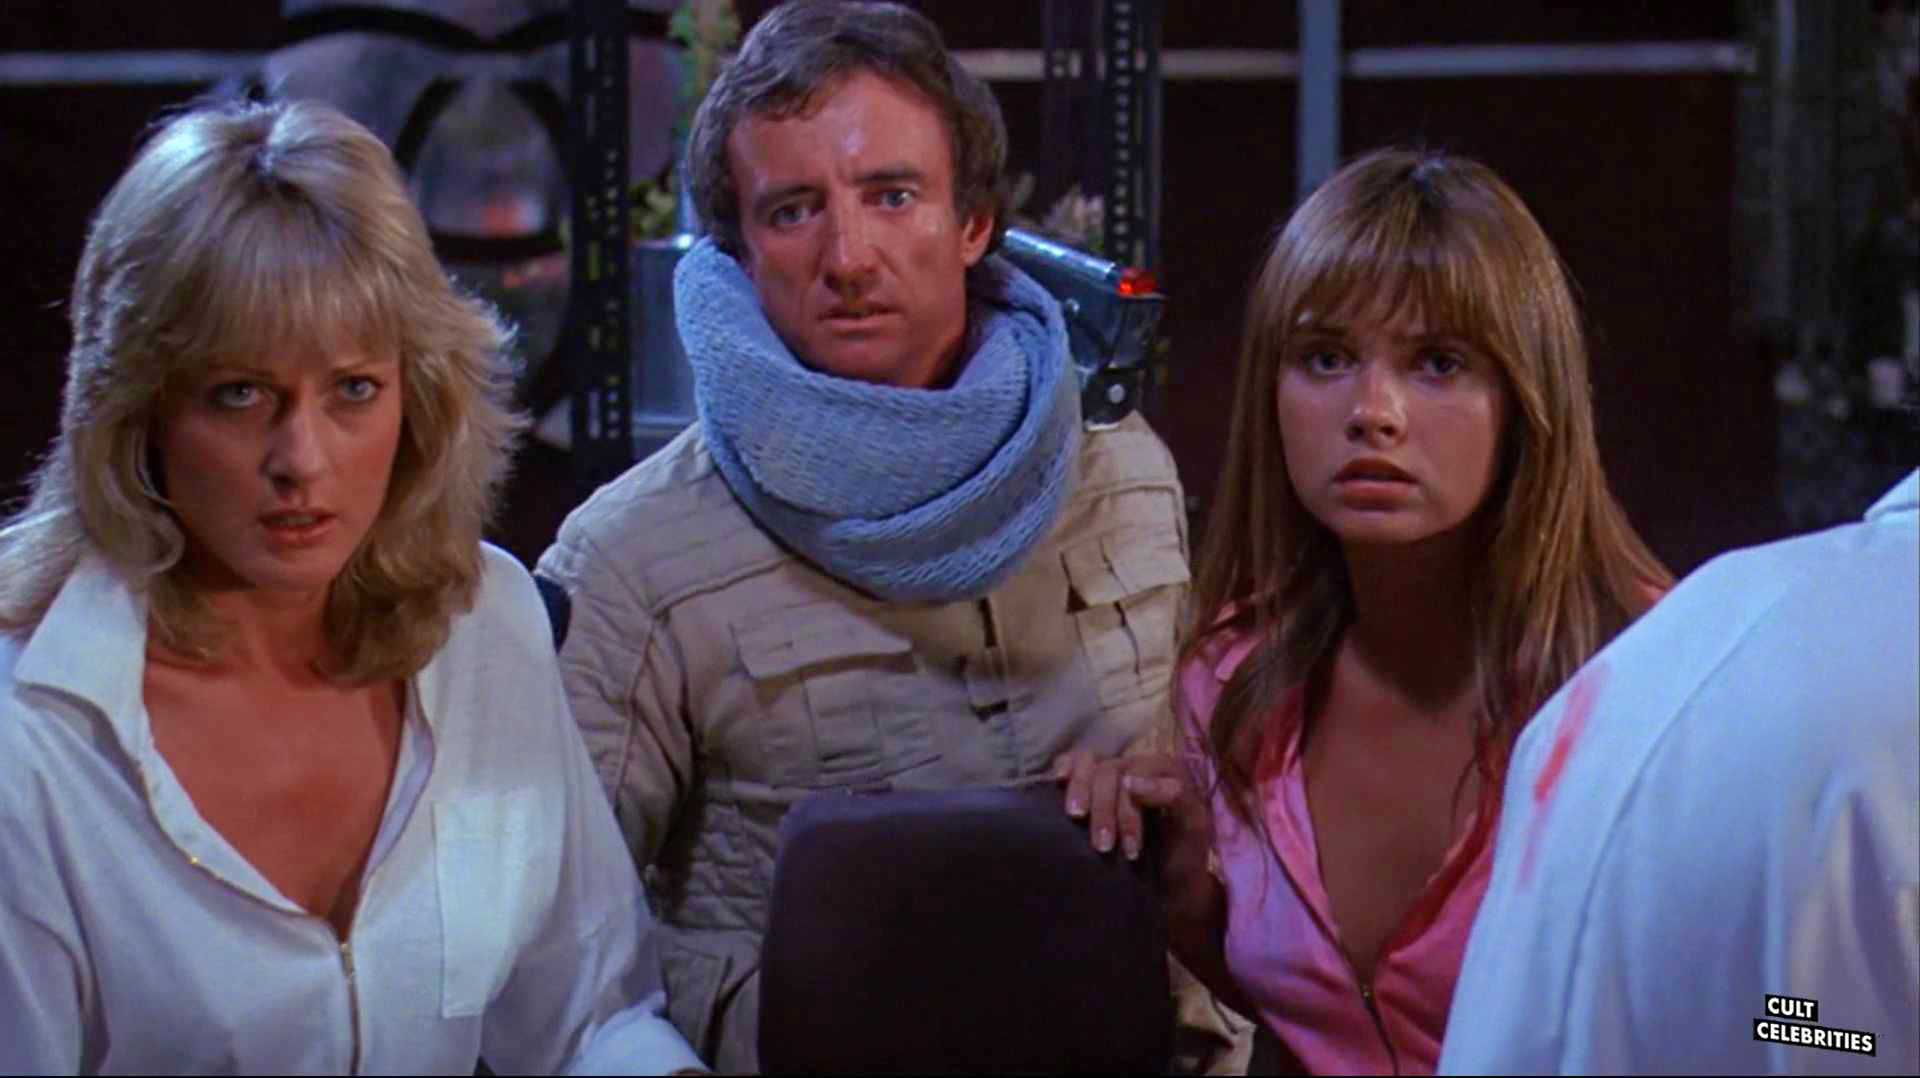 Dawn Dunlap, June Chadwick and Jesse Vint in Forbidden World (1982)